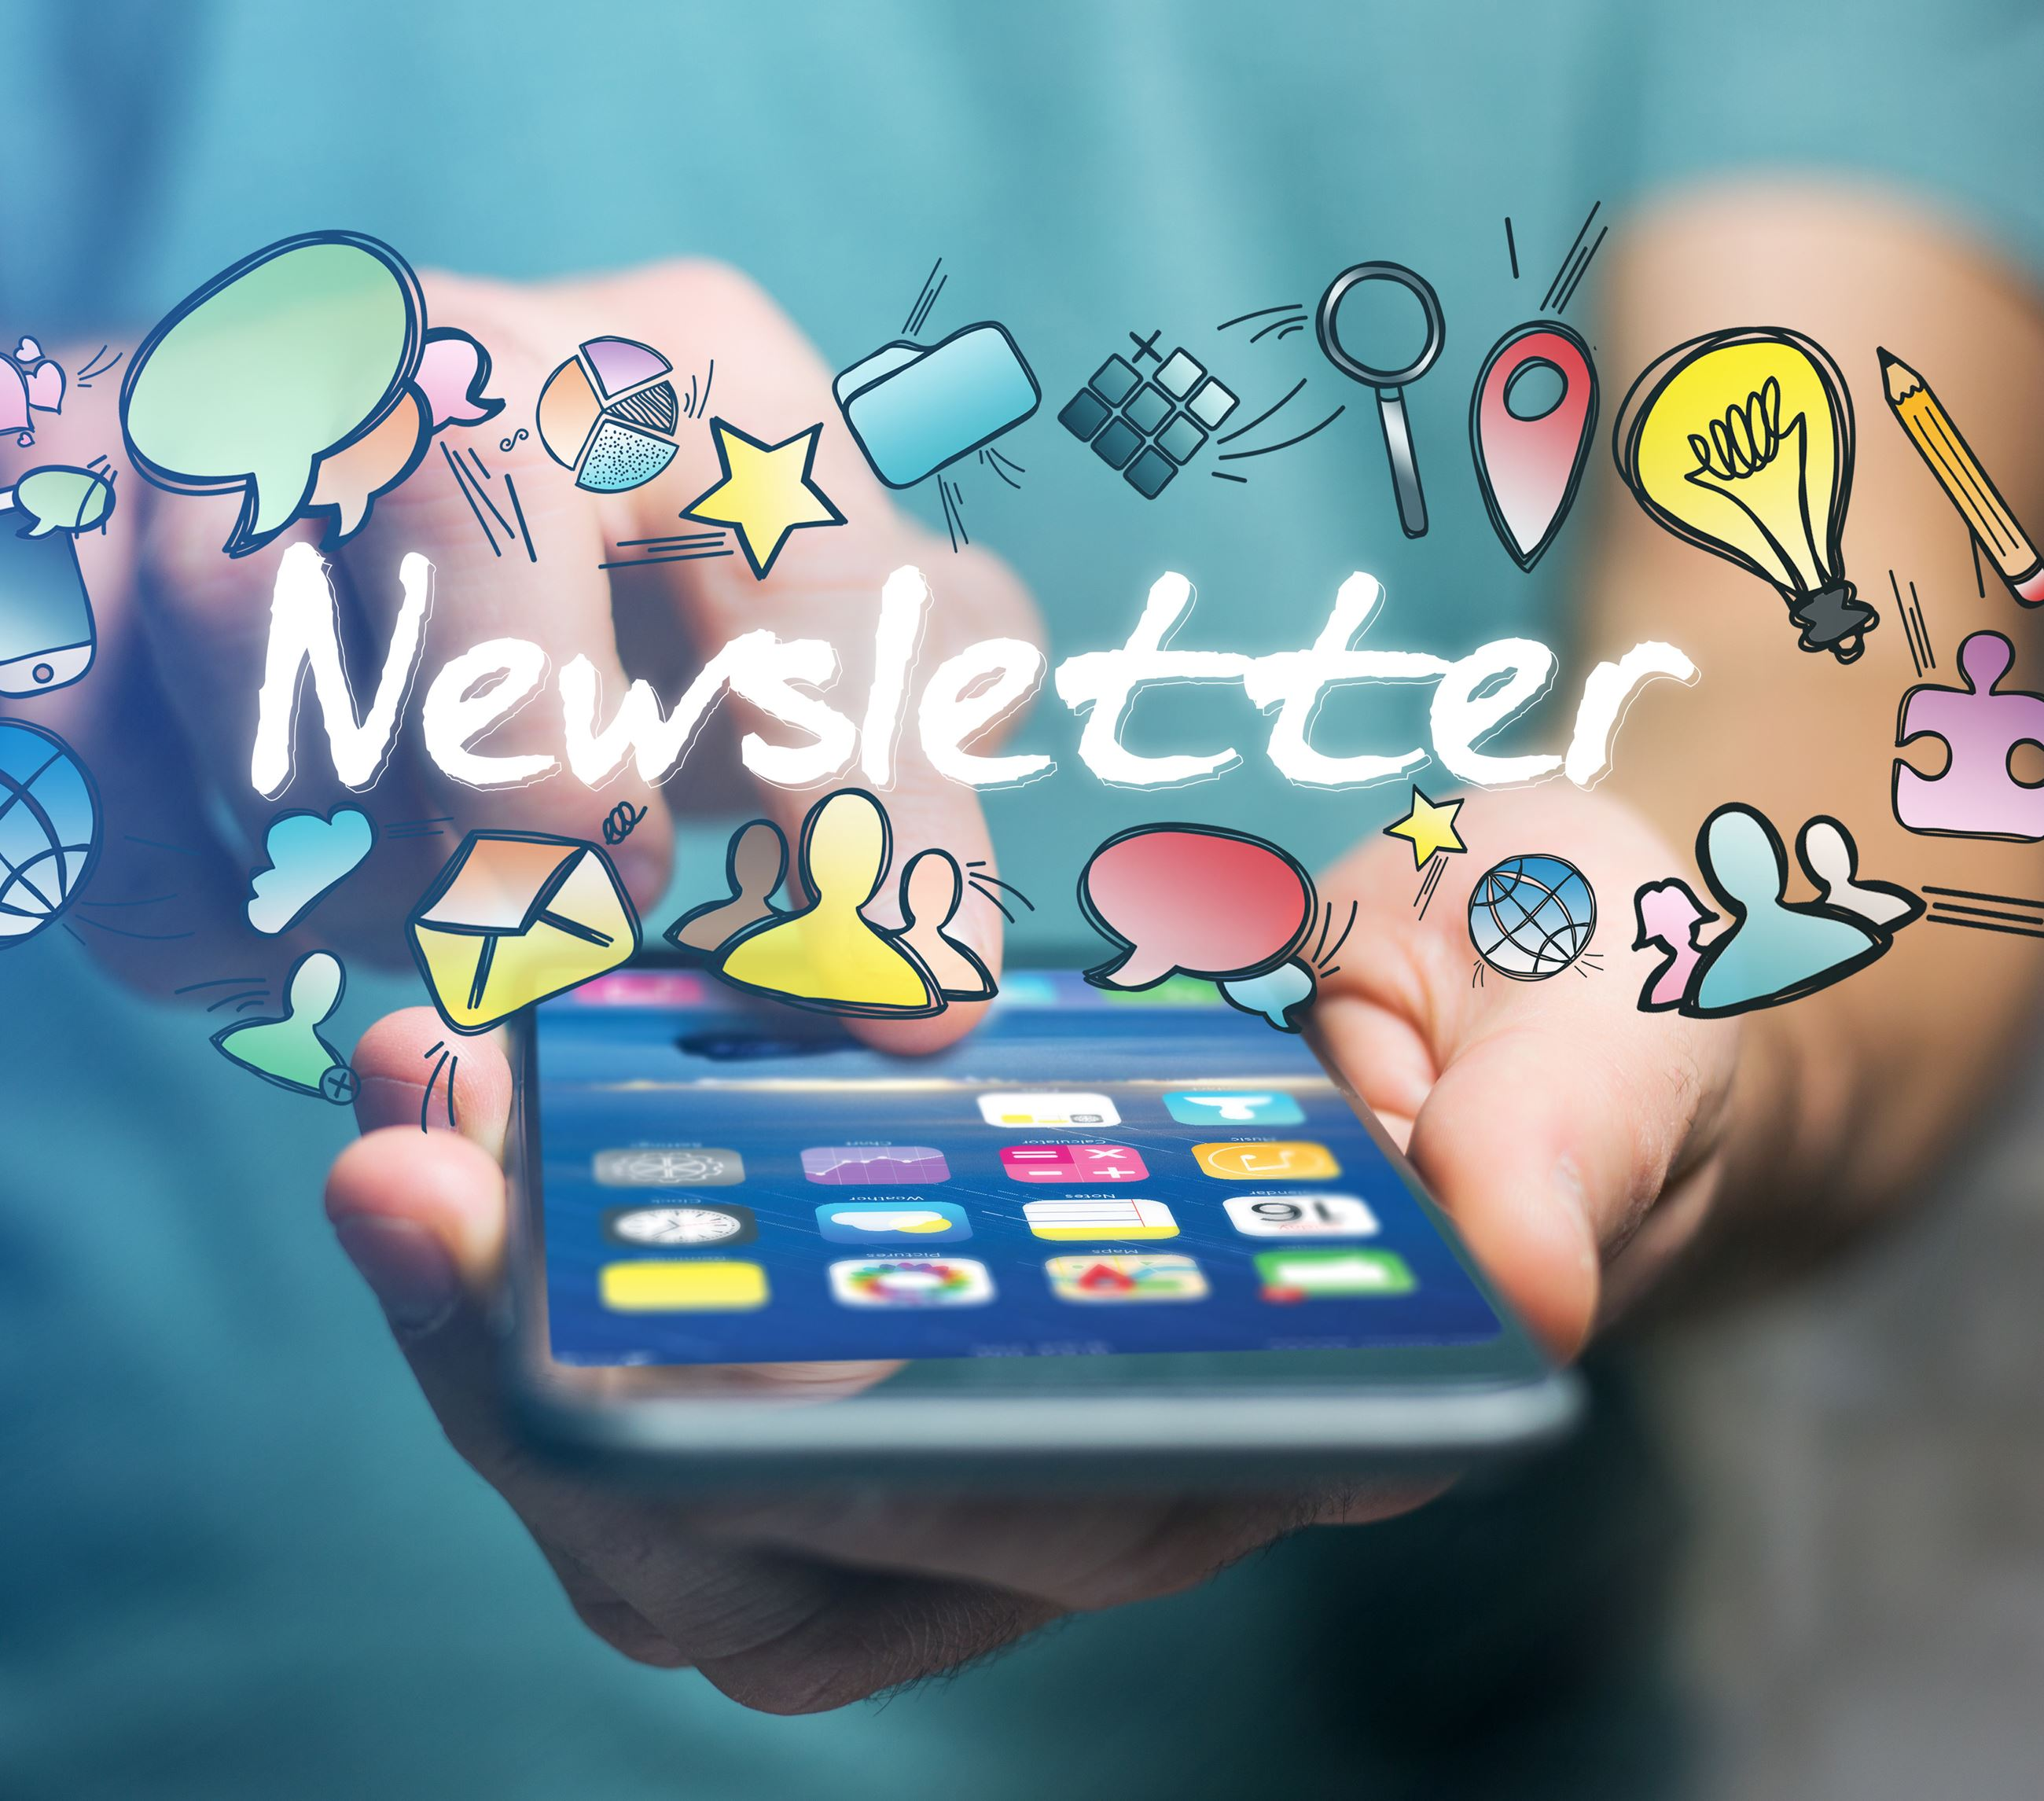 Newsletter_NEWSFEED